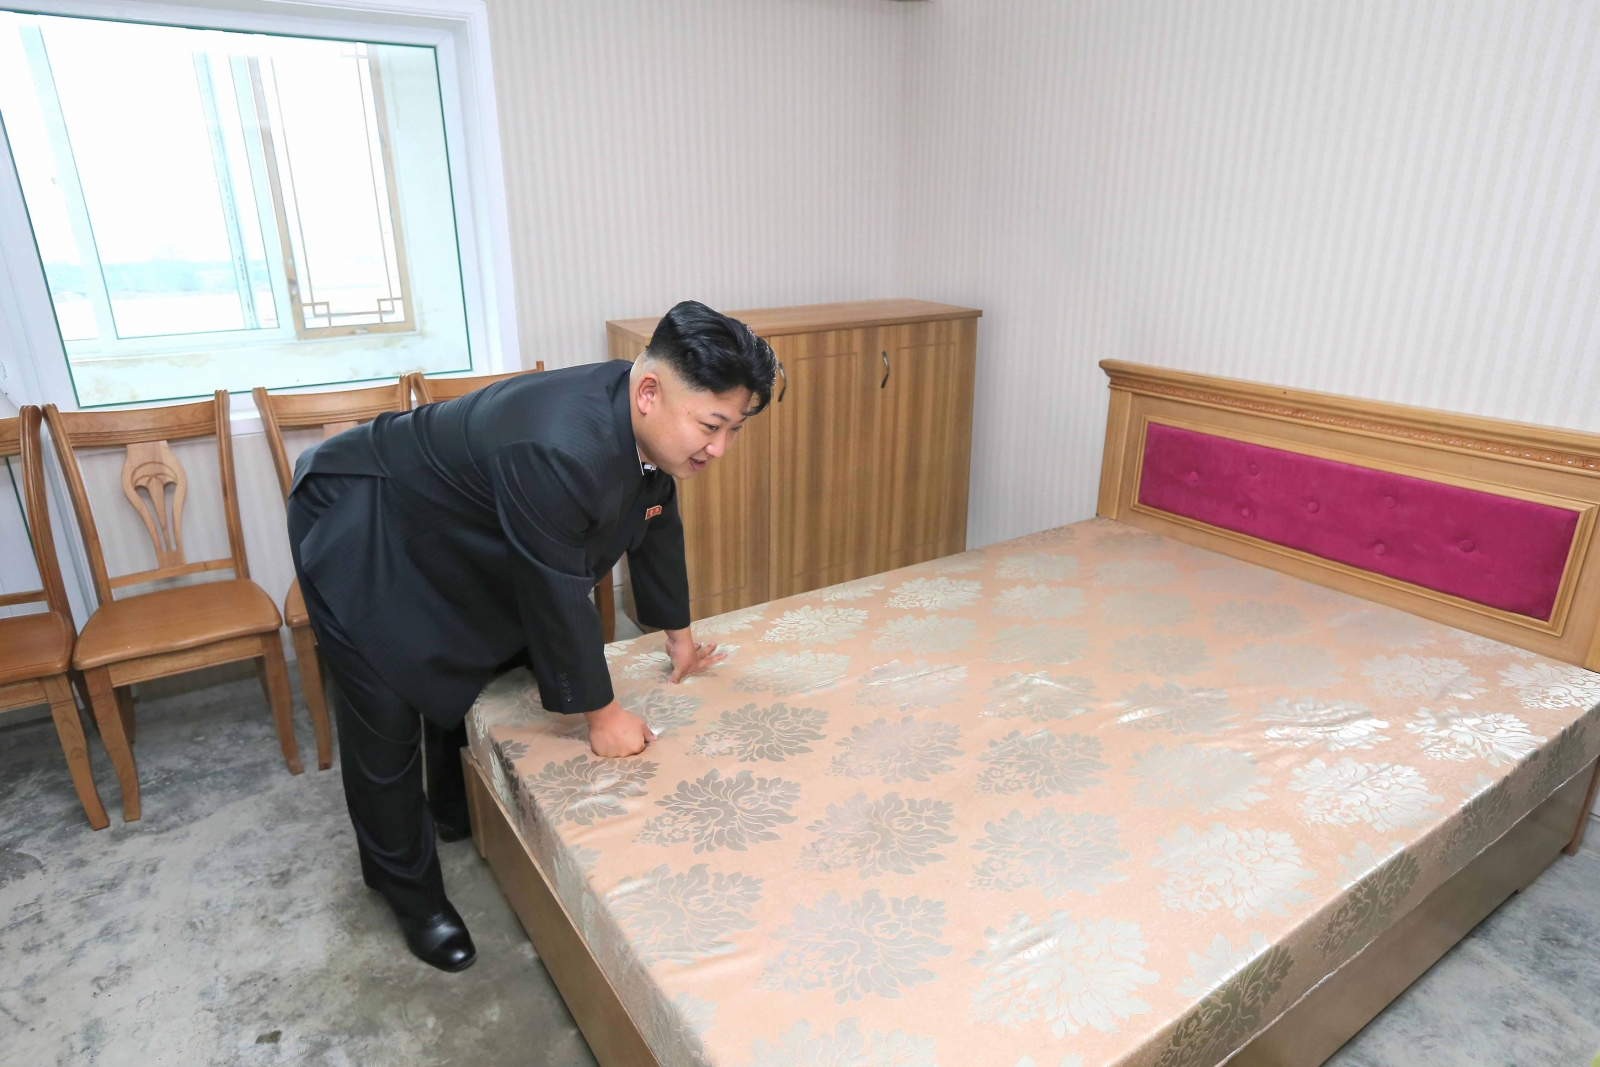 Kim Jong Un inspects a scientists bed